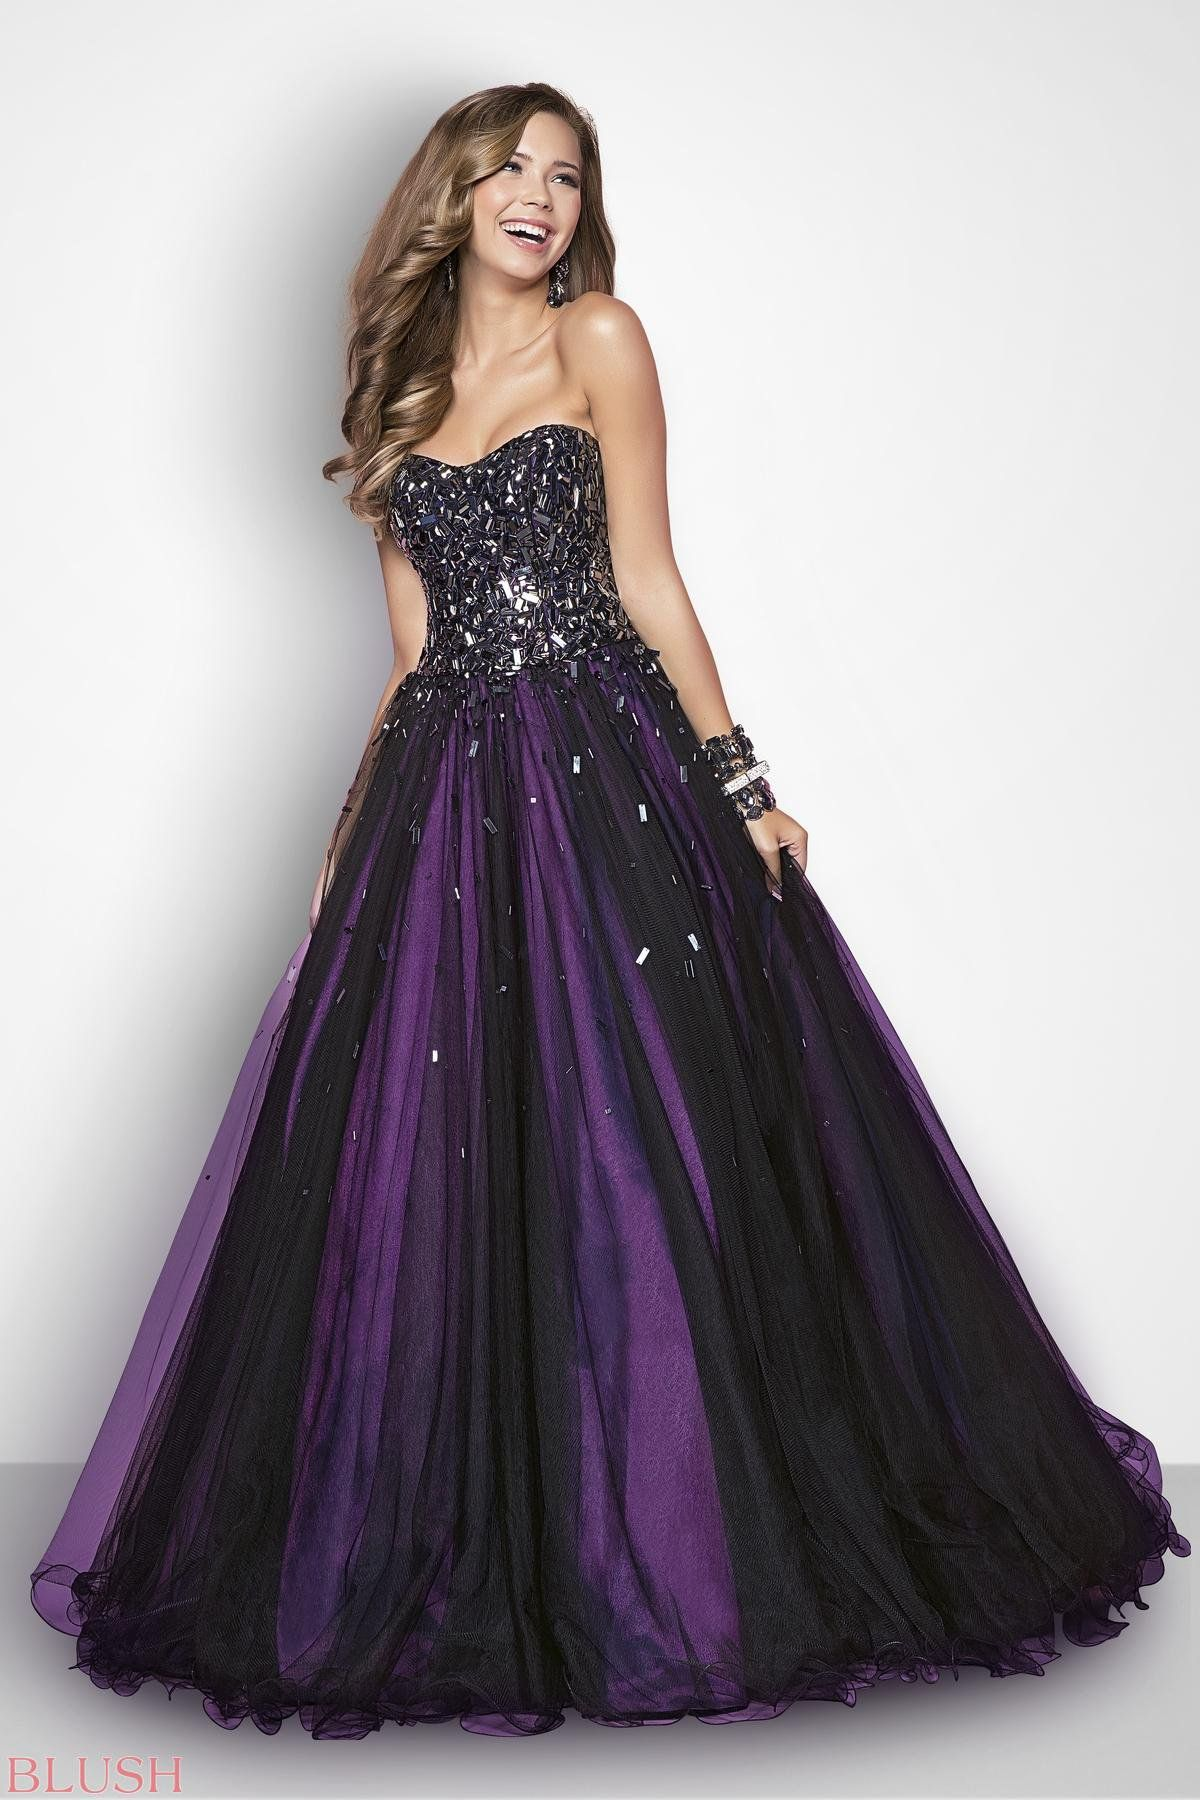 We Have A Wide Range From The Latest Dress Style To Popular Classic Gowns For You To Choose The